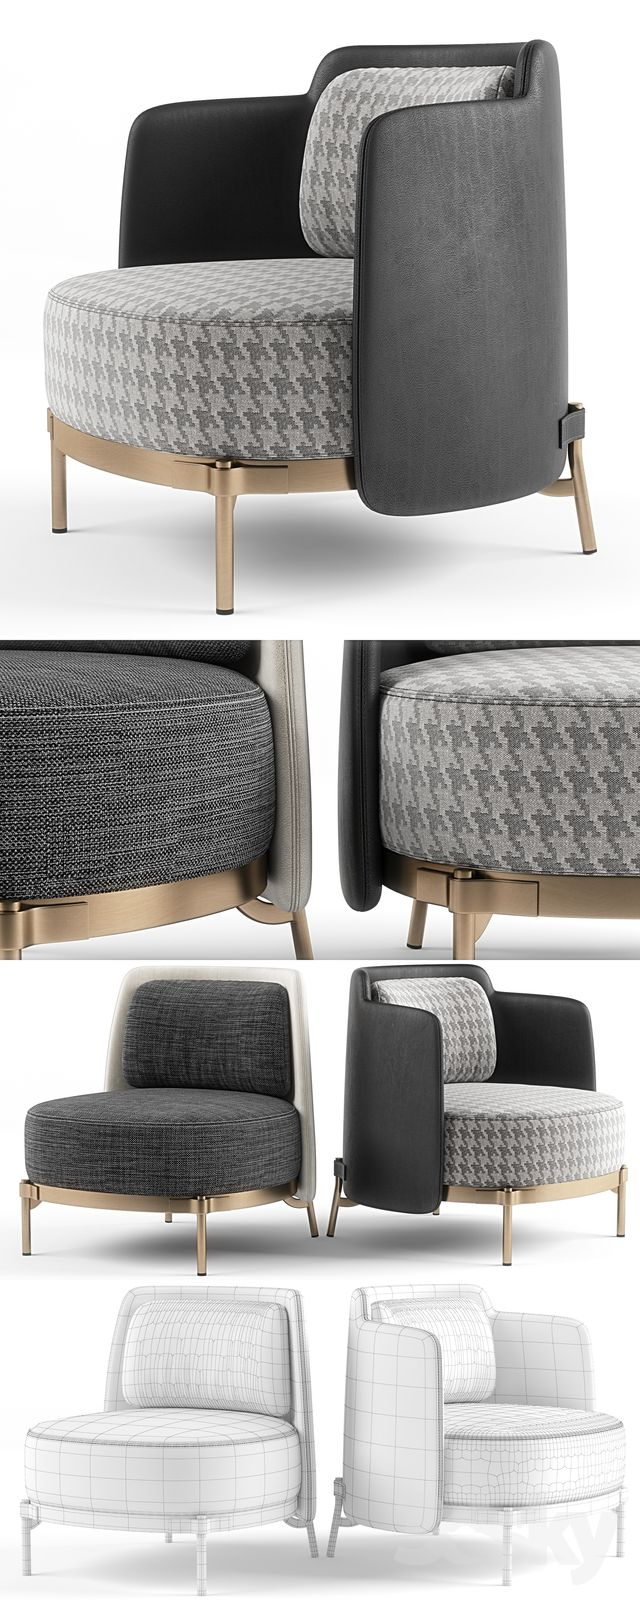 Pin By Jason Chen On Furniture 2 Minotti Furniture Furniture